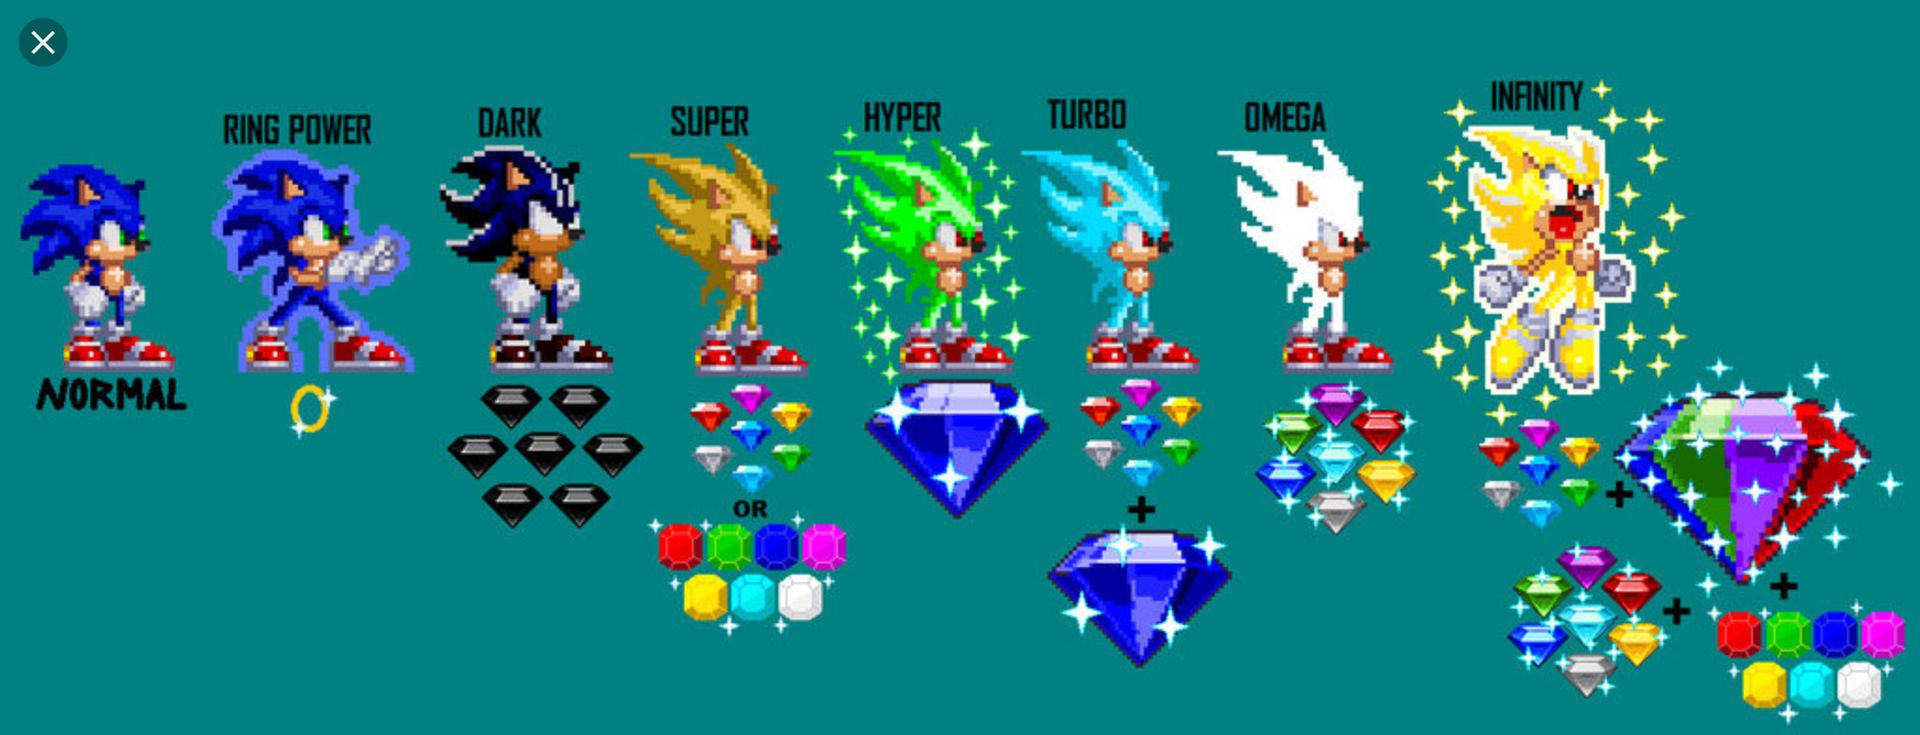 Sonic Characters And Oc S Power Levels Sonic The Hedgehog All Forms And Power Levels Wattpad